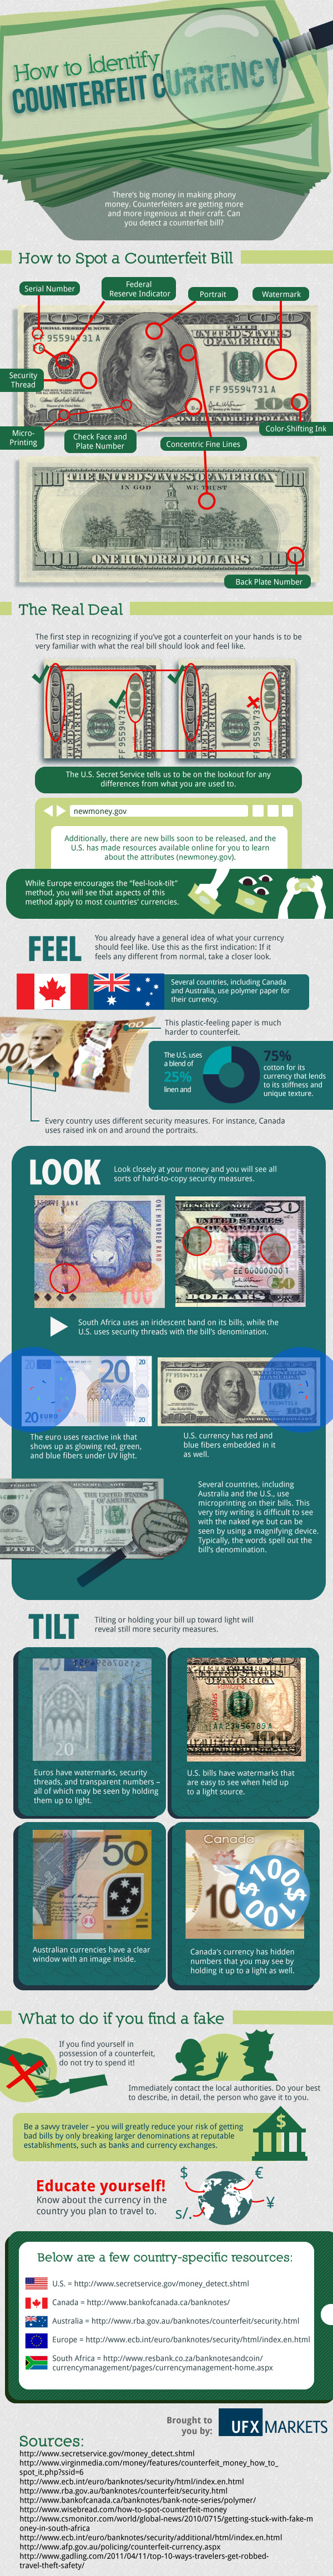 how-identify-counterfeit-currency